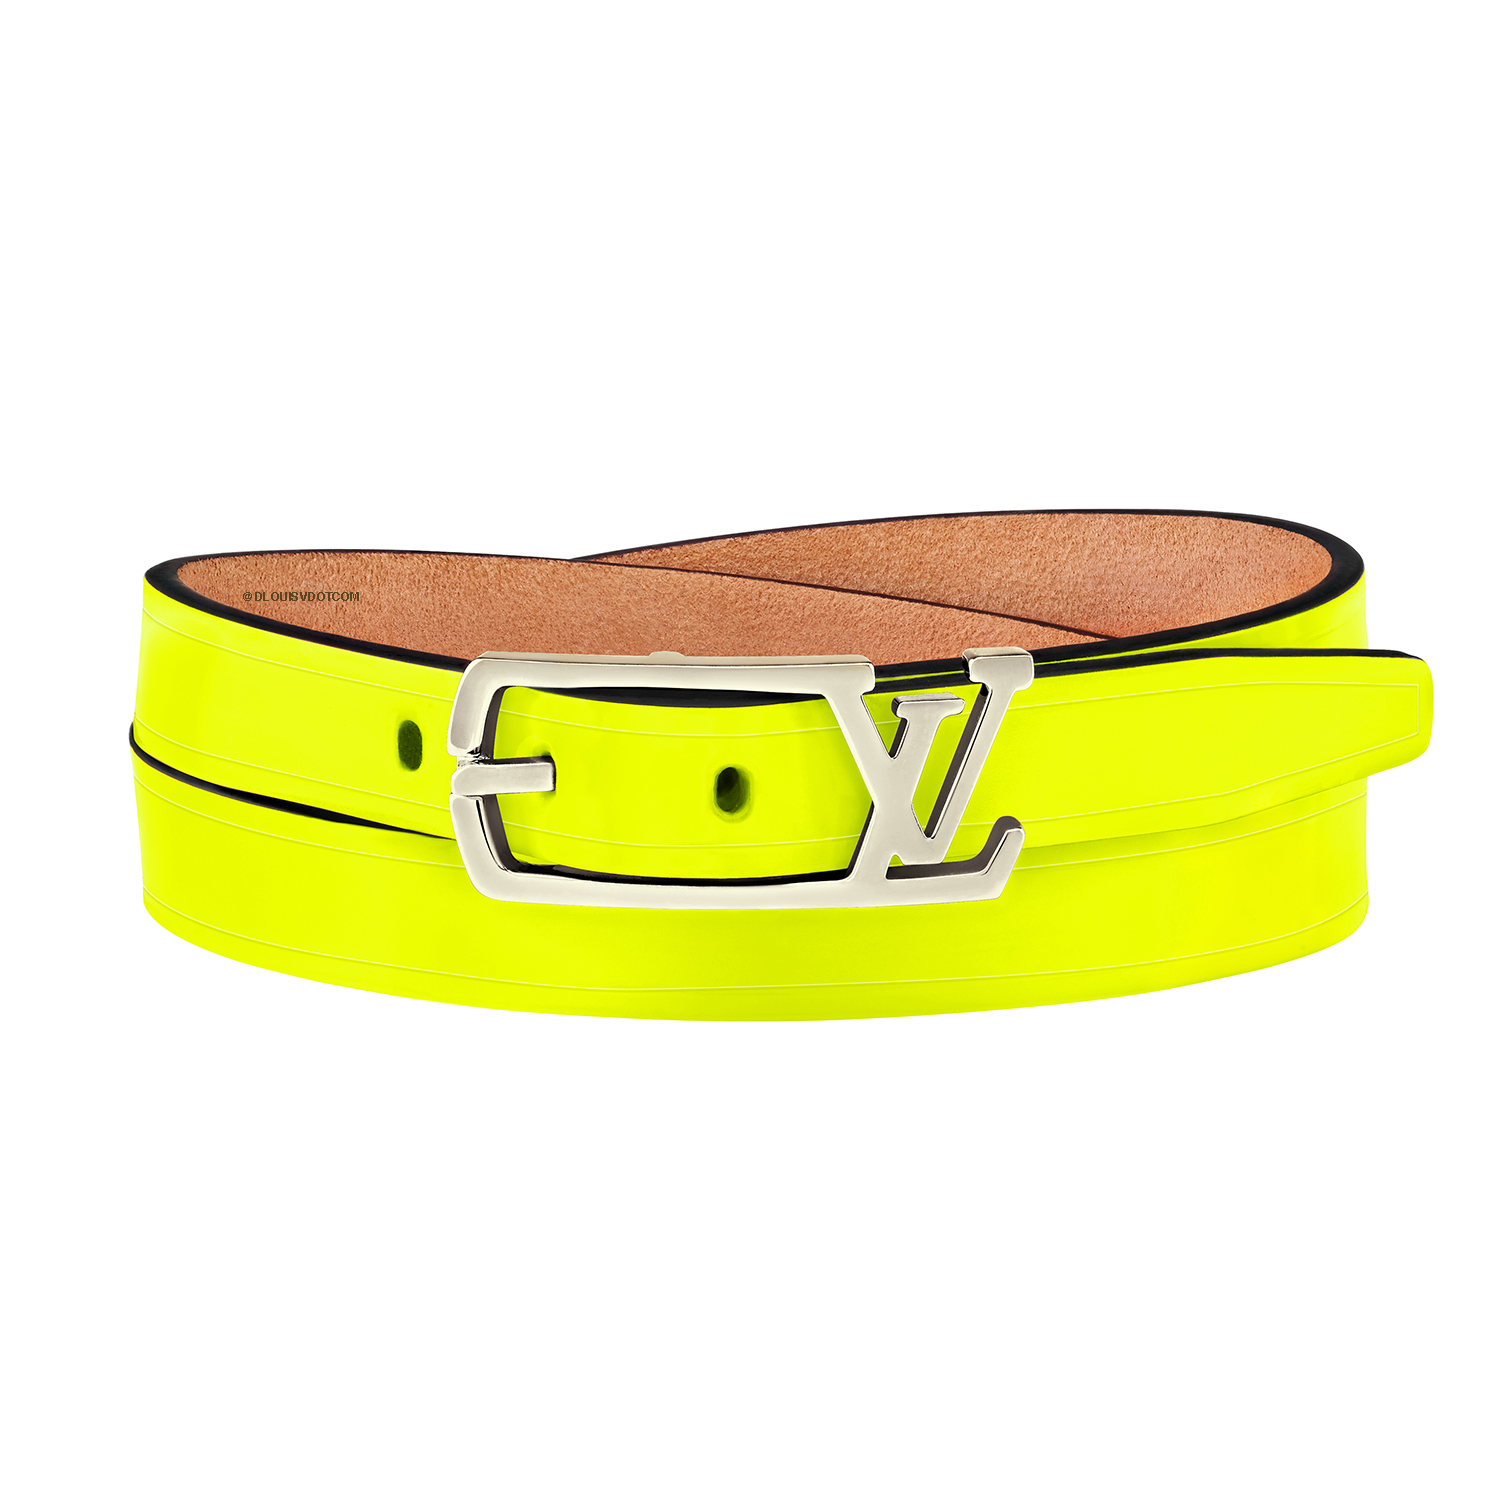 NEOGRAM FLUO - €215 $315MP050JAUNE